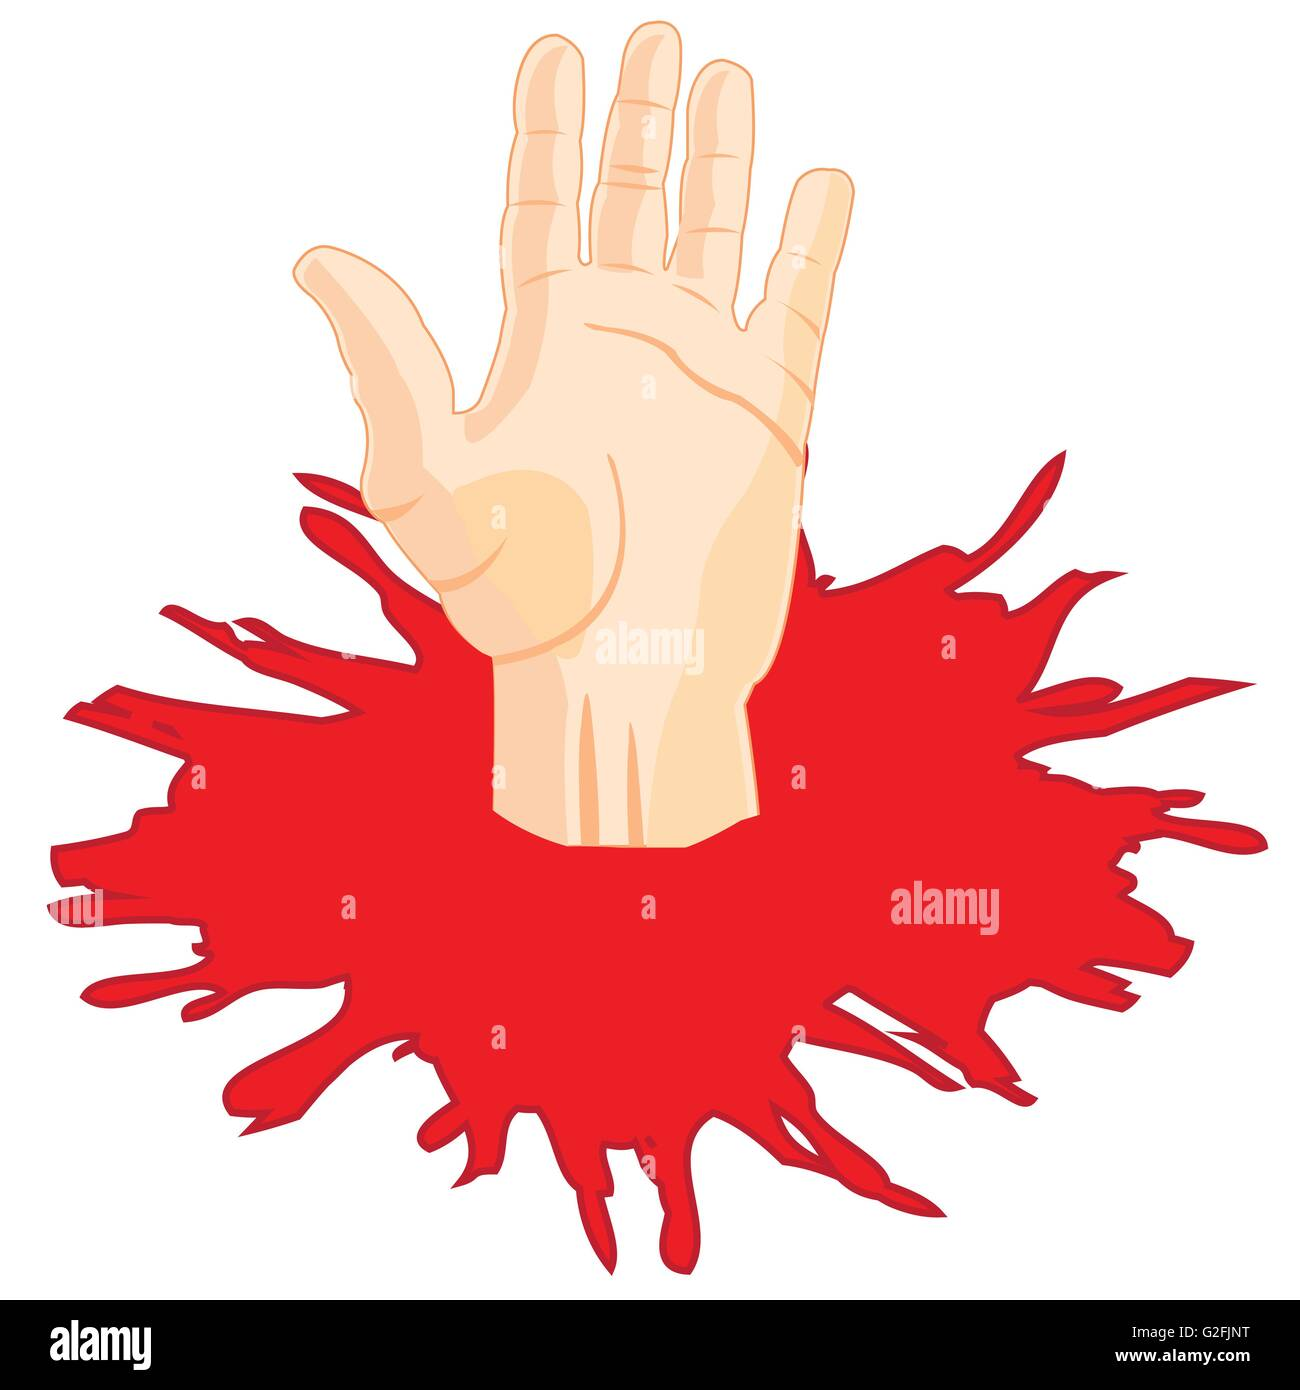 Human hand in puddle of the red liquid - Stock Vector